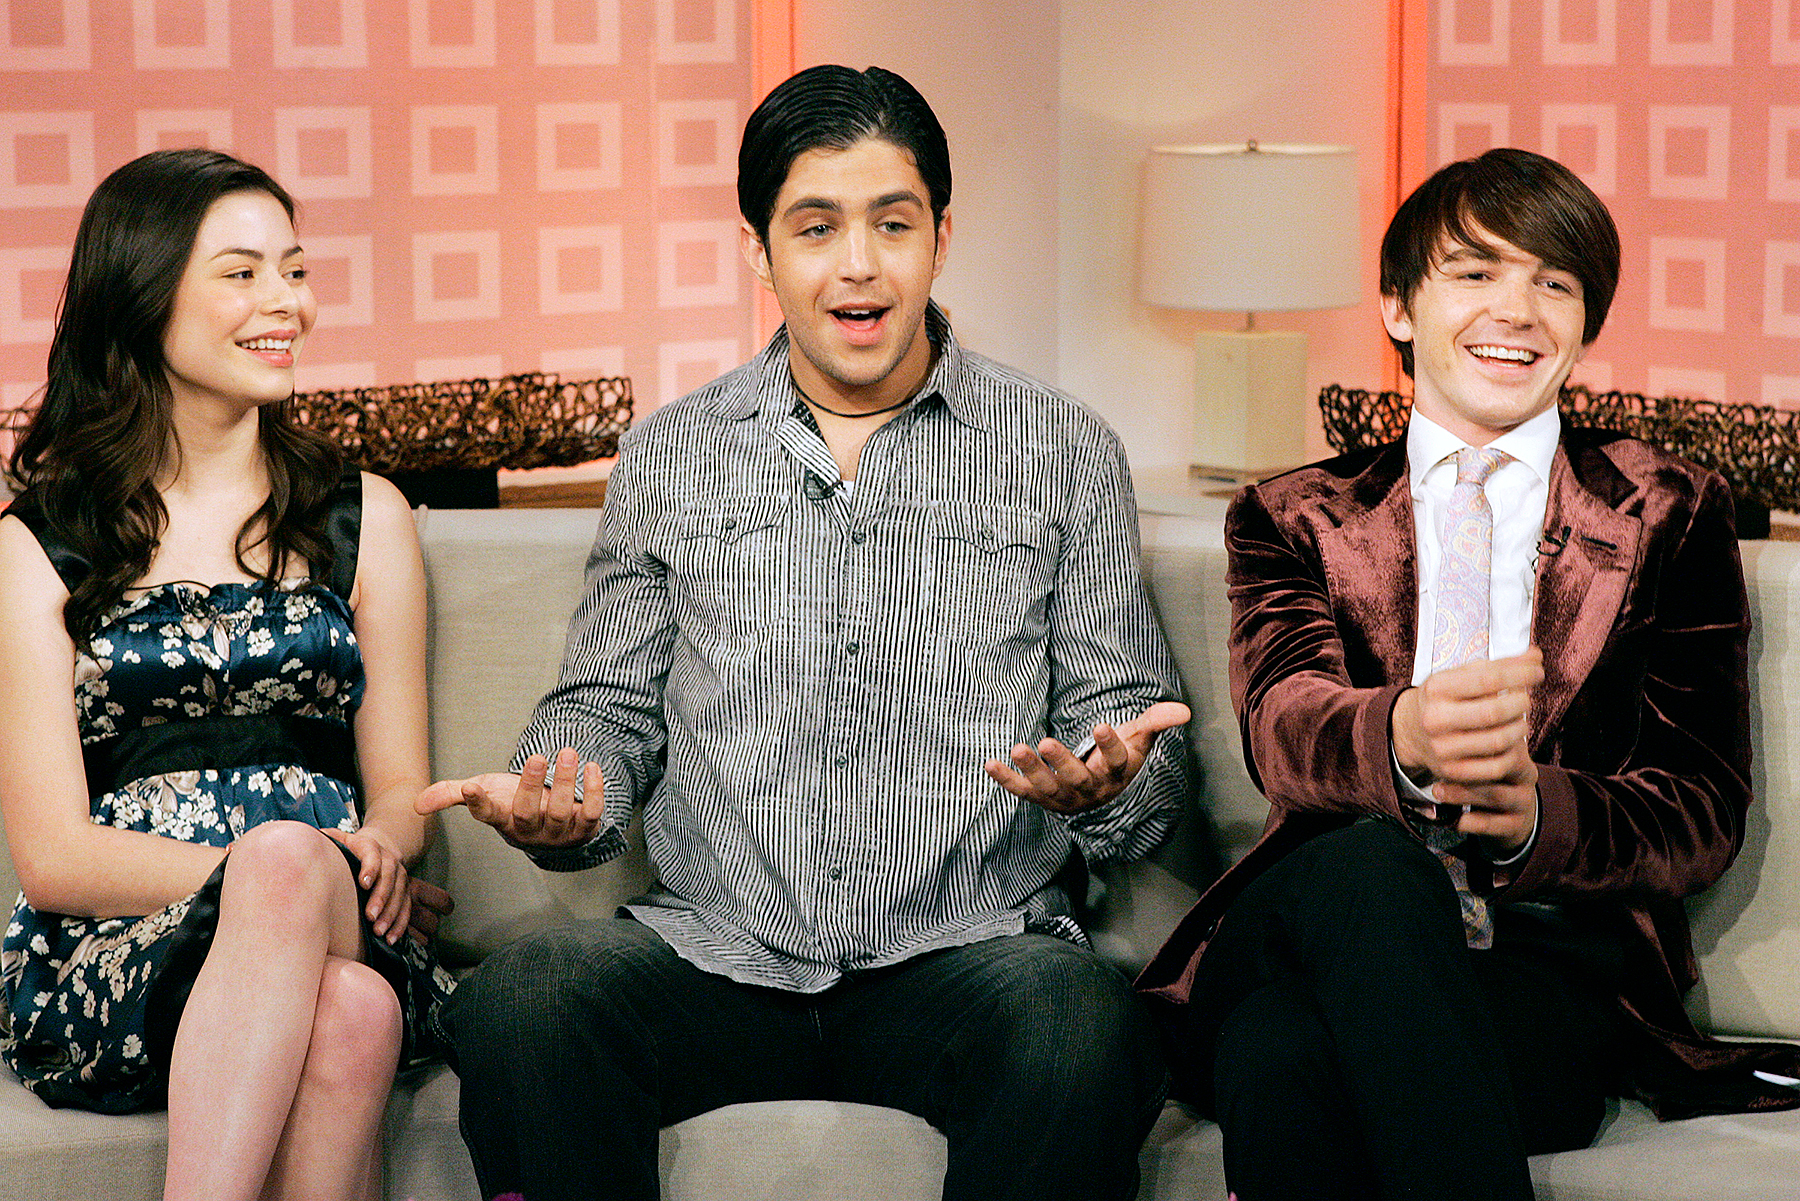 Drake Bell Josh Peck Miranda Cosgrove - Bell and Peck appeared on the Today show in 2007 with Miranda Cosgrove , who played their devious sister Megan on the sitcom.